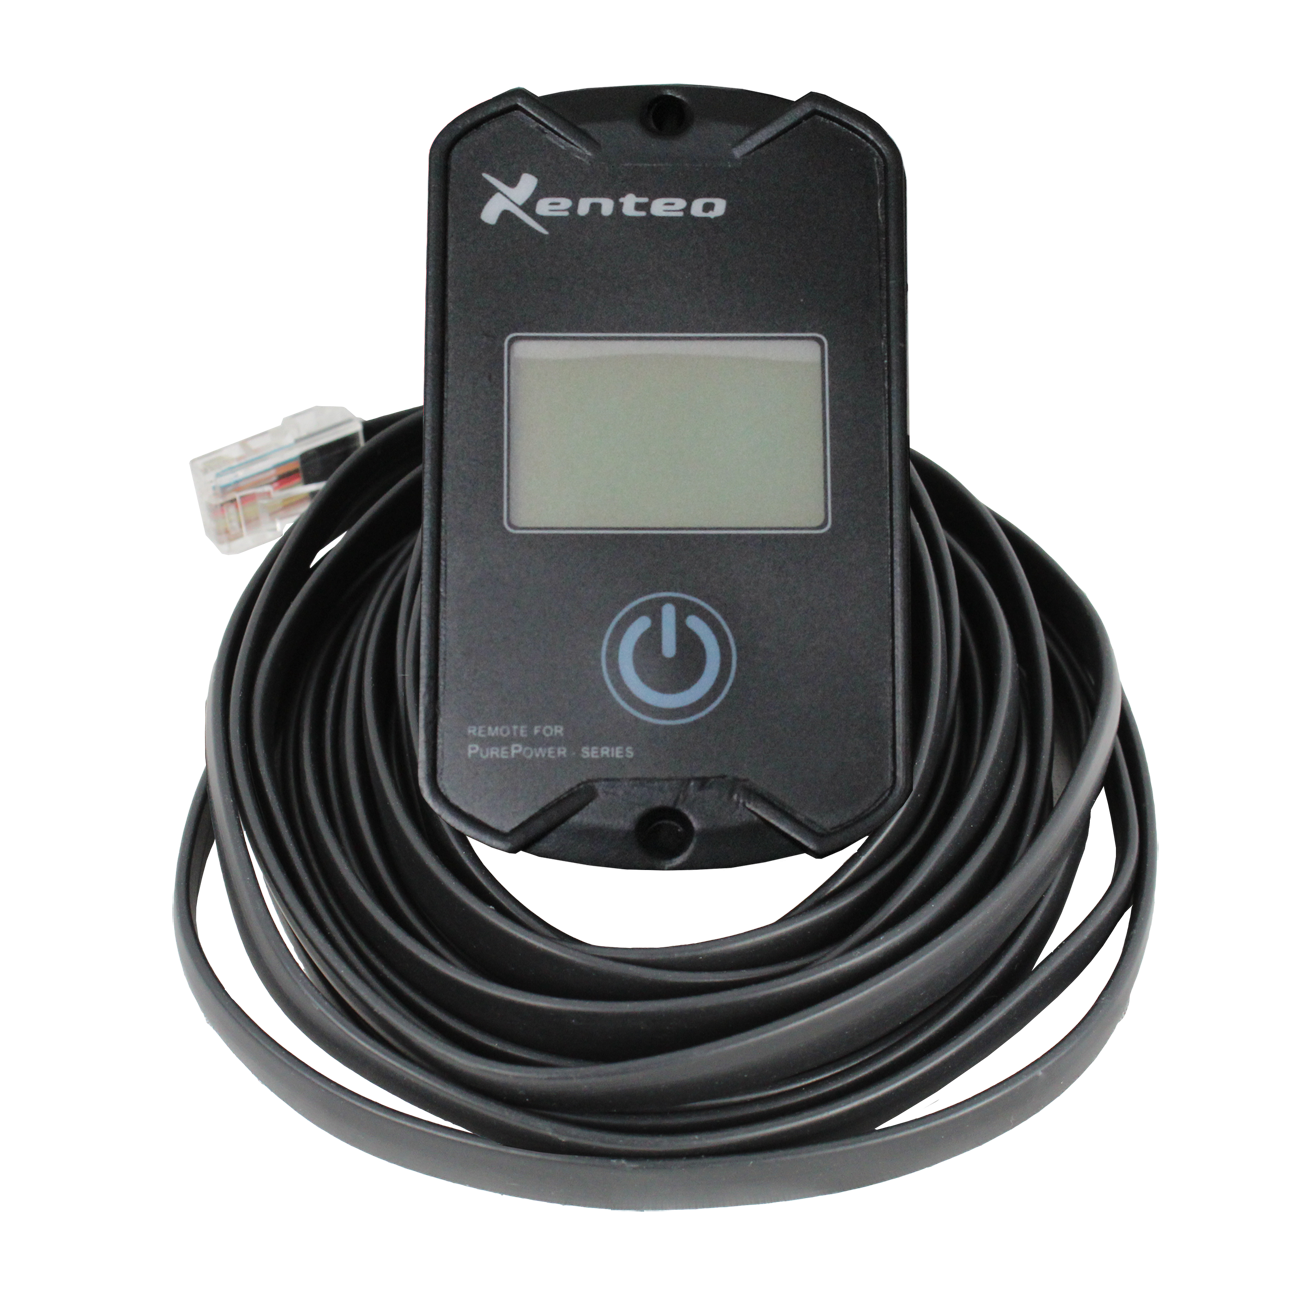 PPR-3 Remote Control PurePower Serie (only C Model)